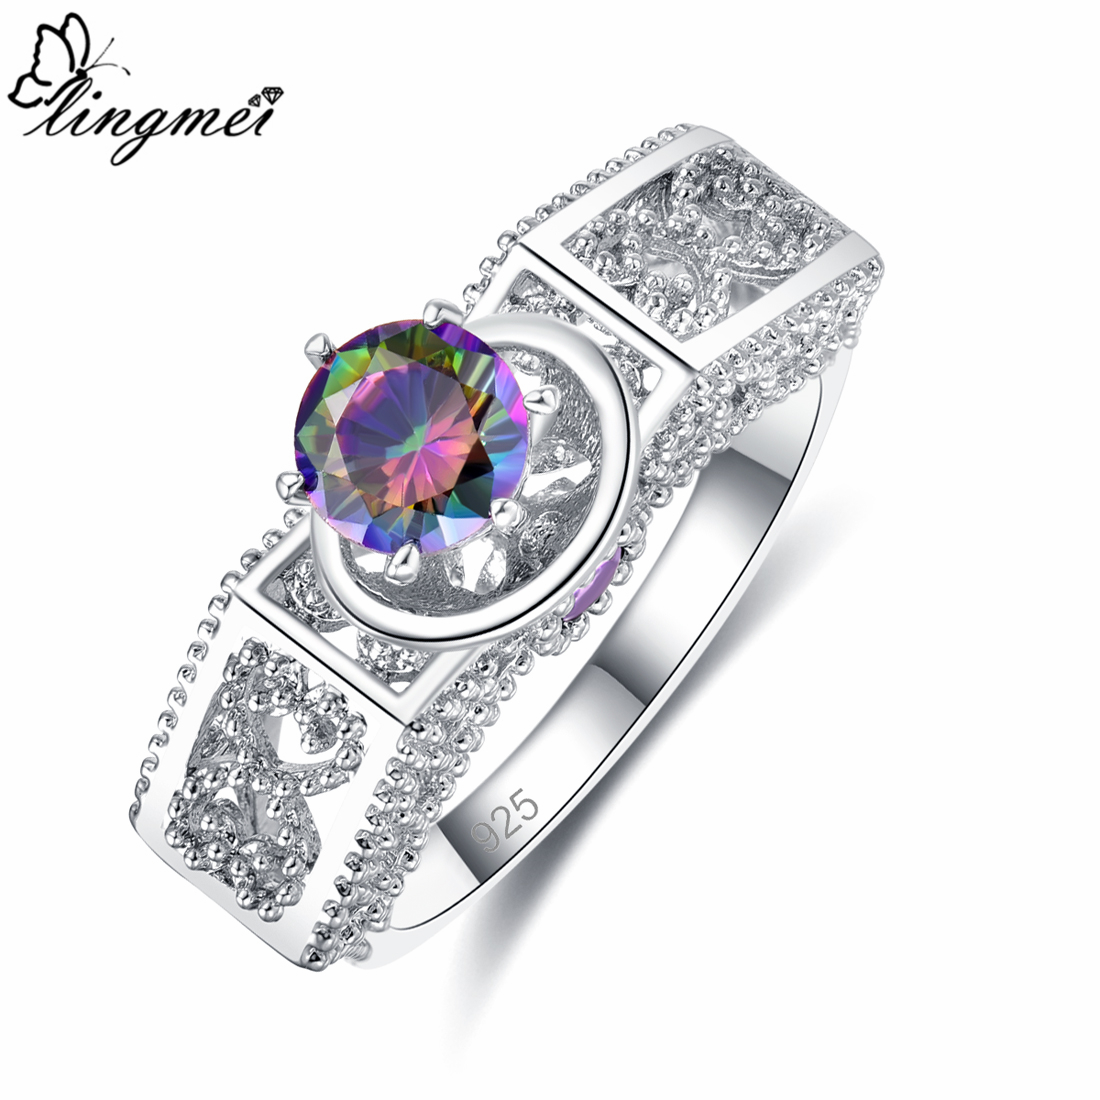 lingmei Engagement Wedding Band Round Zircon Fashion Jewelry 925 Silver Ring Size 6 7 8 9 Dazzling Anniversary Party Rings